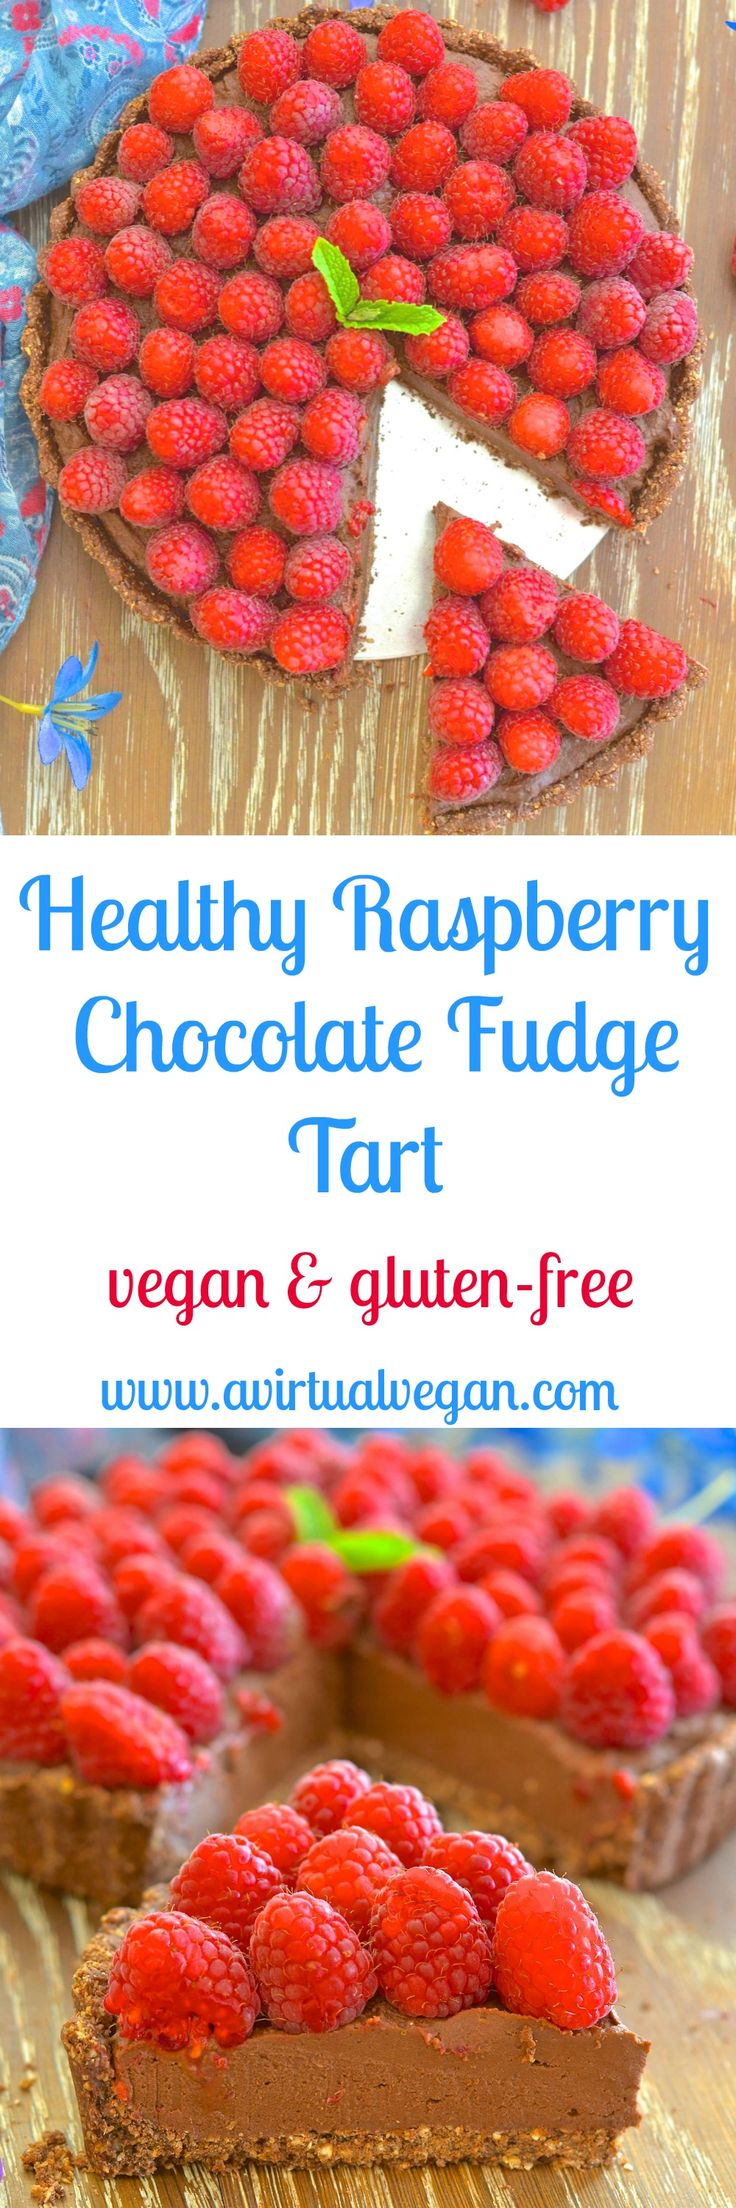 Want a dessert that looks & tastes decadent but is secretly healthy? I've got you covered with my decadent but Healthy Raspberry Chocolate Fudge Tart. via @avirtualvegan